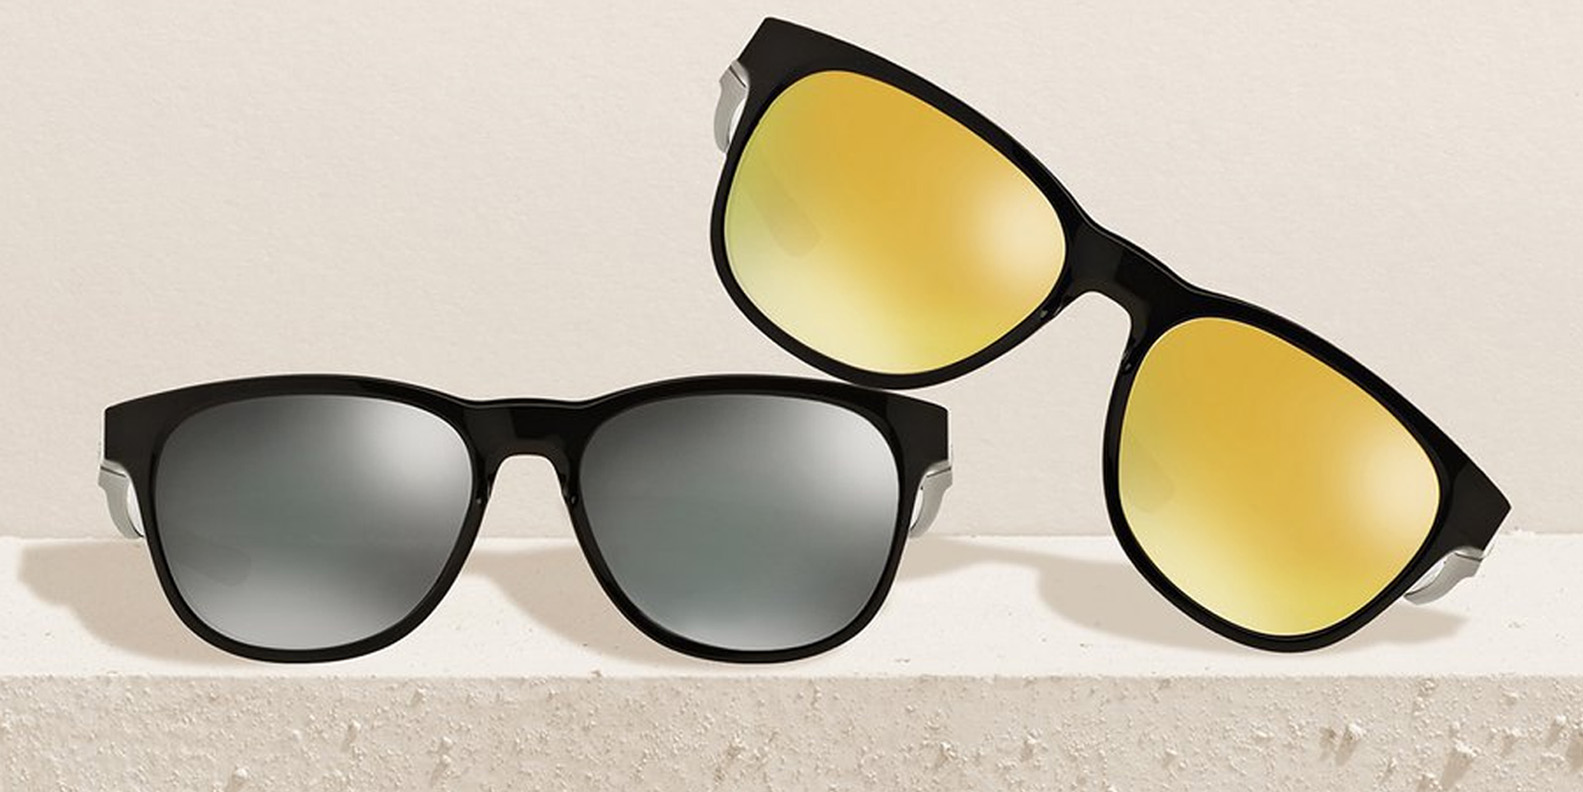 Give dad a new pair of shades for Father's Day with Oakley, Nike & more from $40 at Hautelook